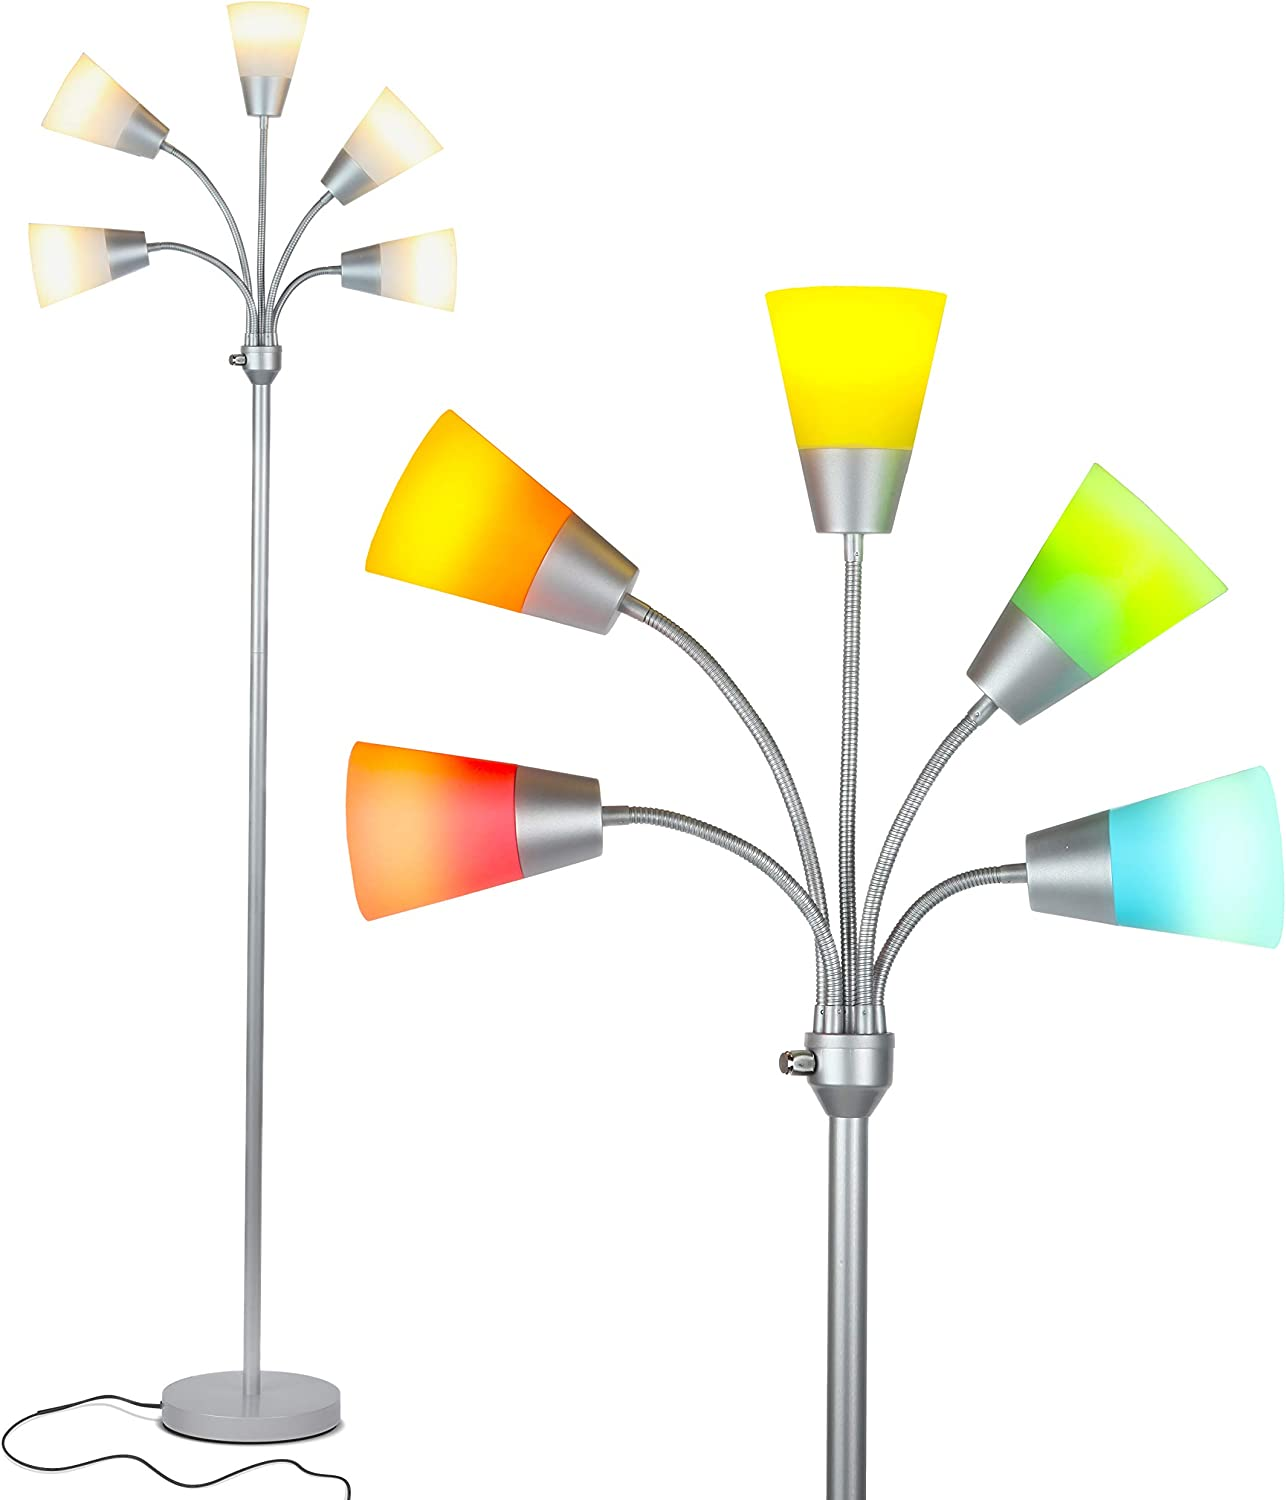 Brightech Medusa Modern LED Floor Lamp – Contemporary Multi Head Standing Reading Lamp for Living Room, Bedroom, Kids Room - Includes 5 LED Bulbs and 5 White & Colored Interchangeable Shades – Silver